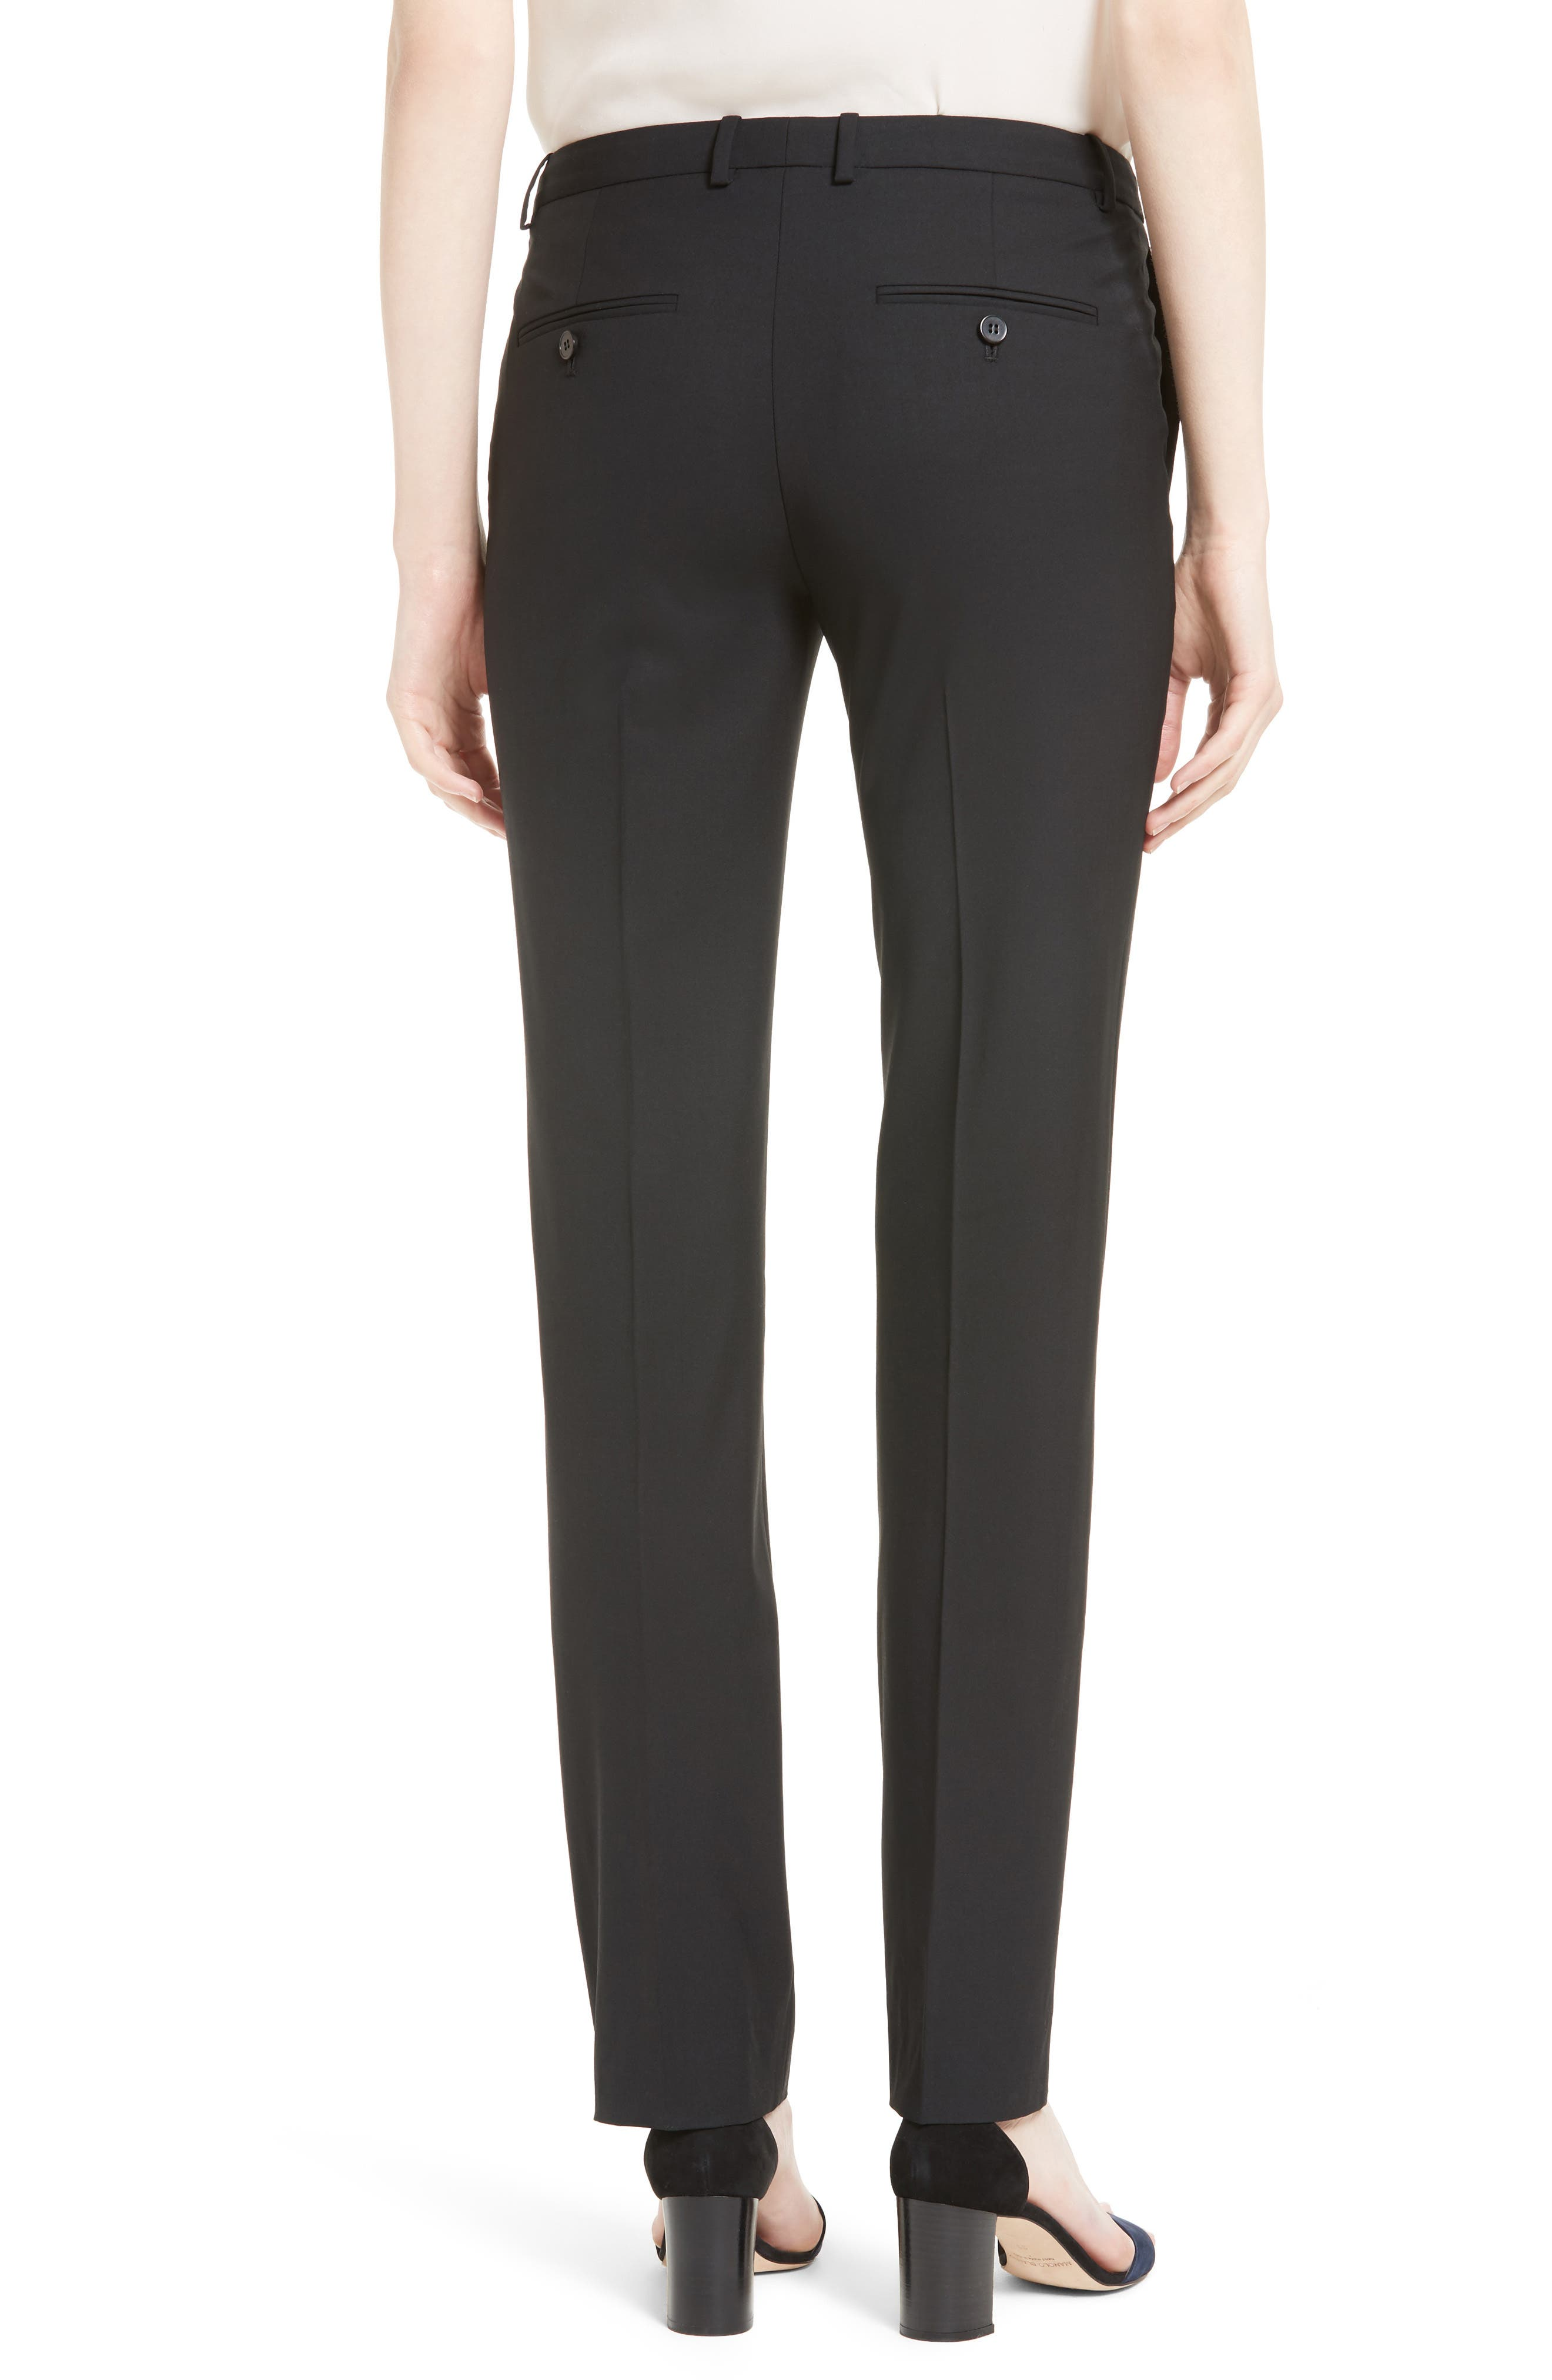 THEORY, Hartsdale B Good Wool Suit Pants, Alternate thumbnail 2, color, 001